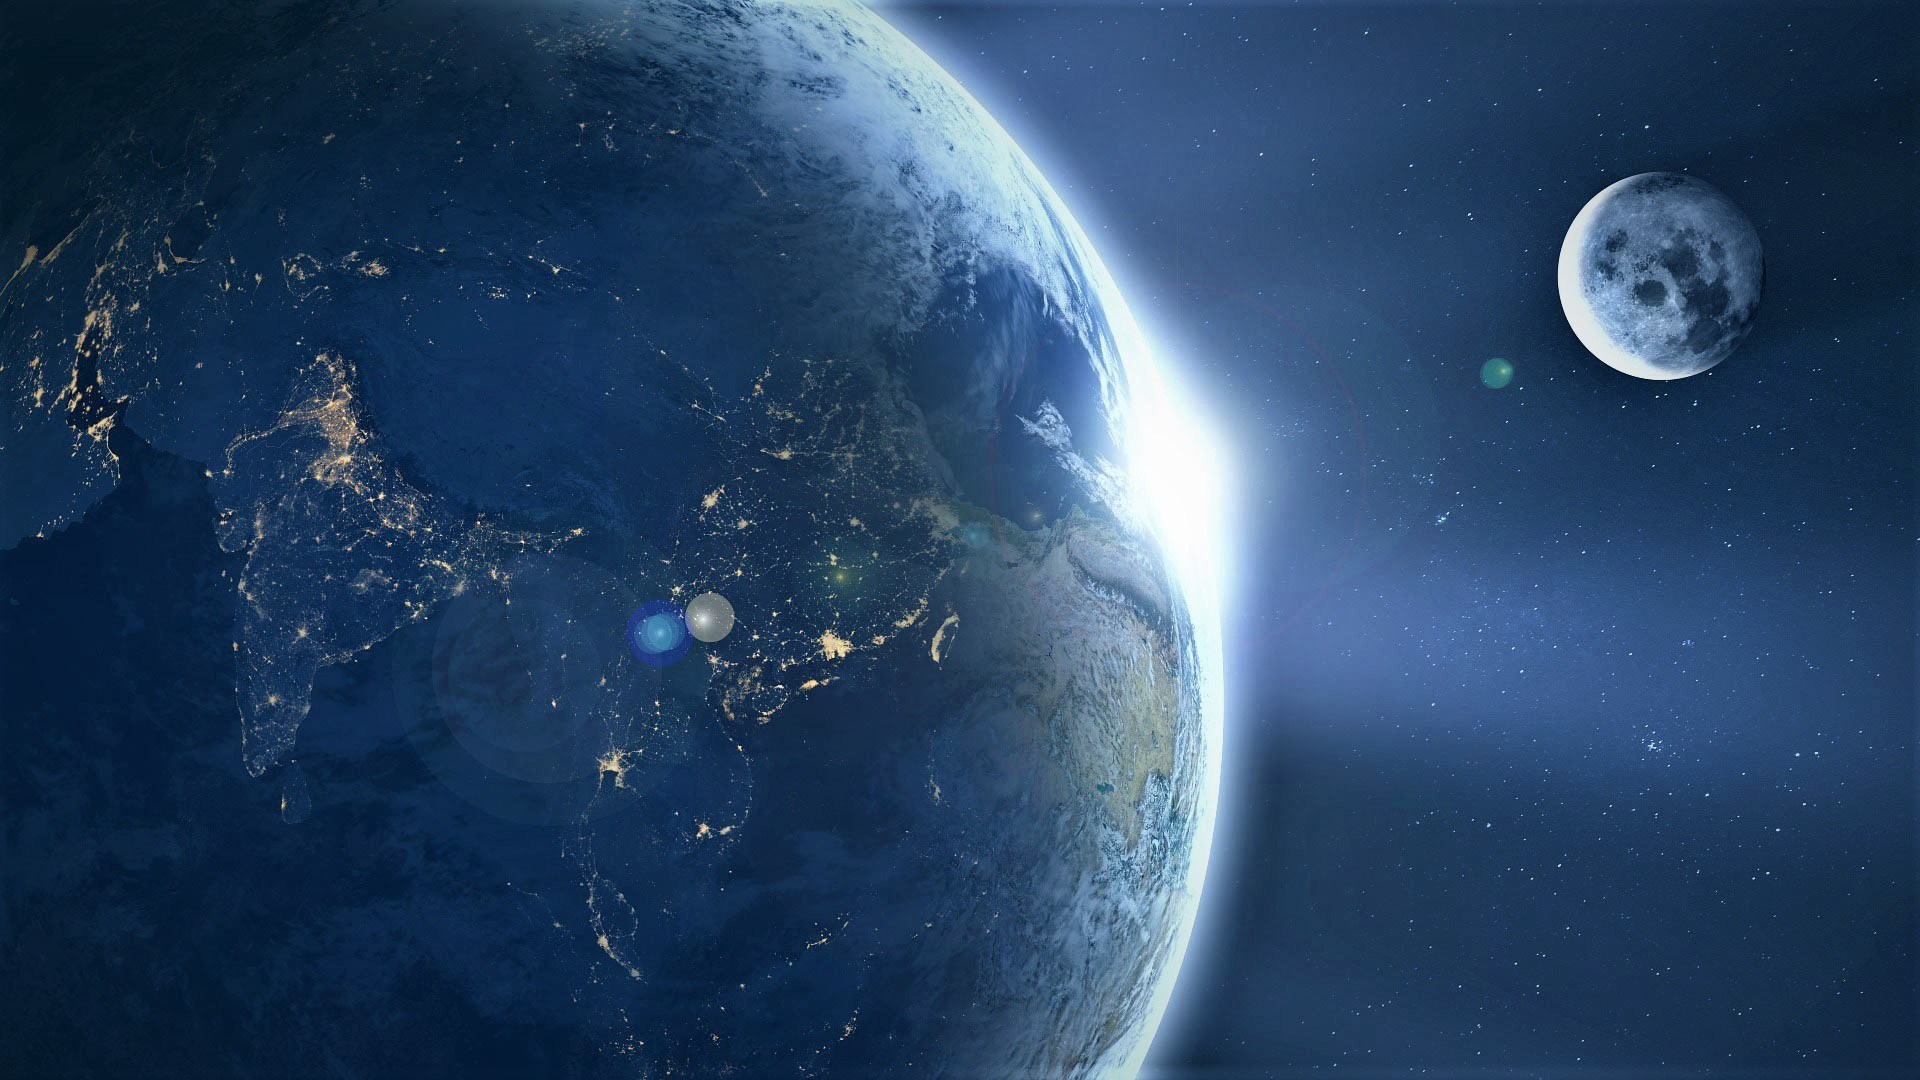 New finding shows that man never left Earth's atmosphere 14